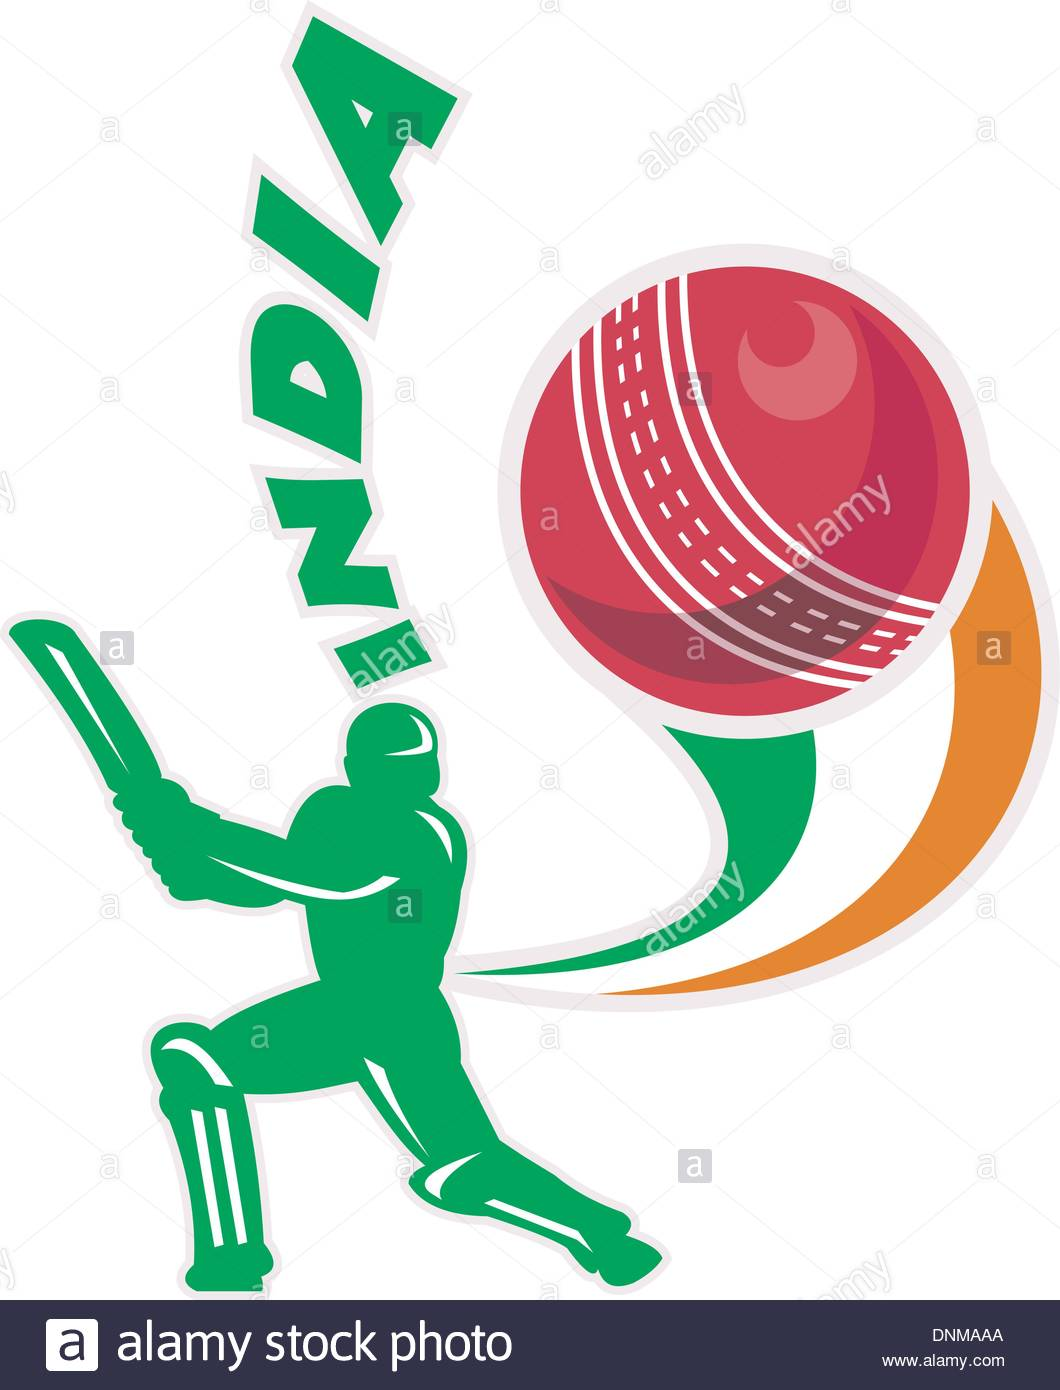 1060x1390 Illustration Of A Cricket Batsman Silhouette Batting Front View